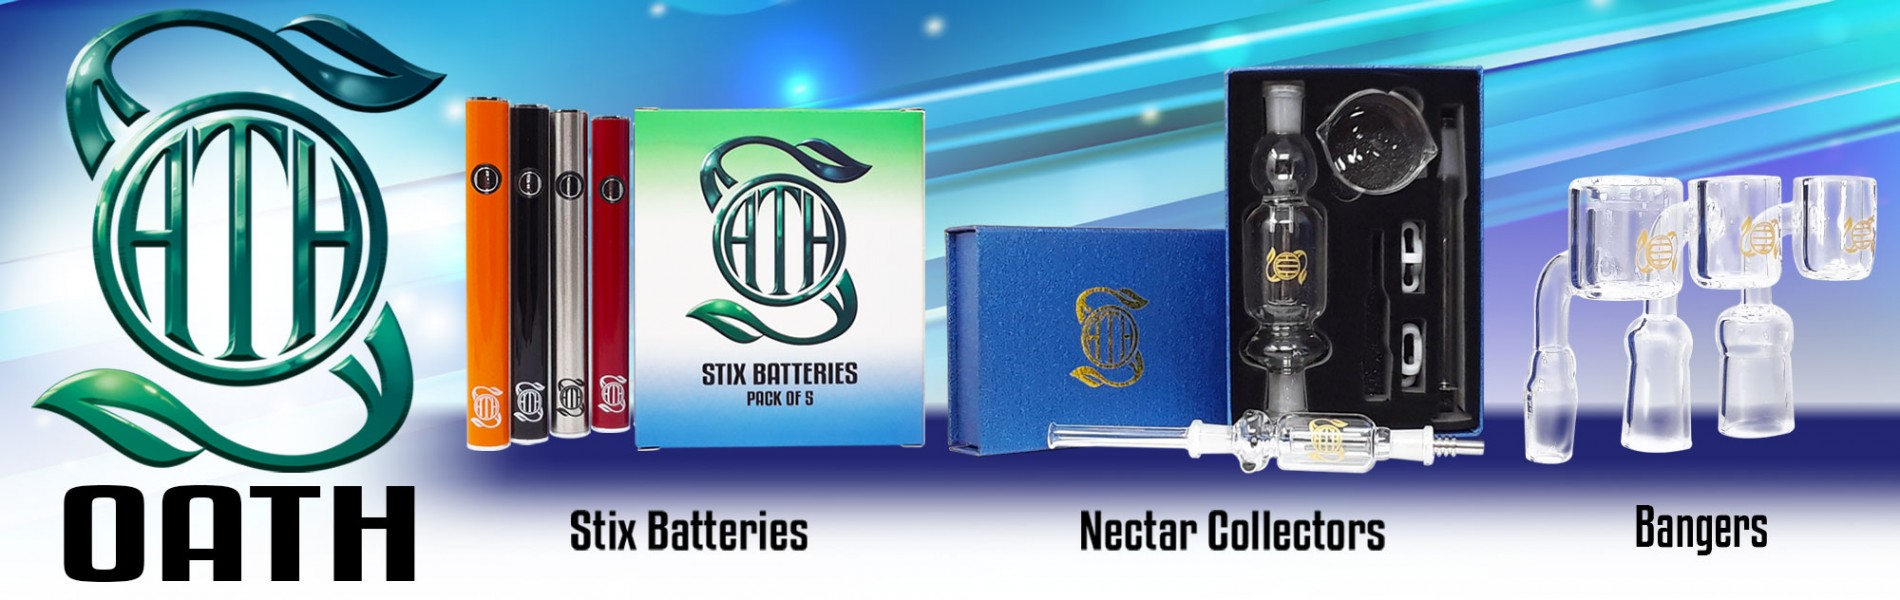 Oath Brand Products - Stix Batteries and Nectar Collectors